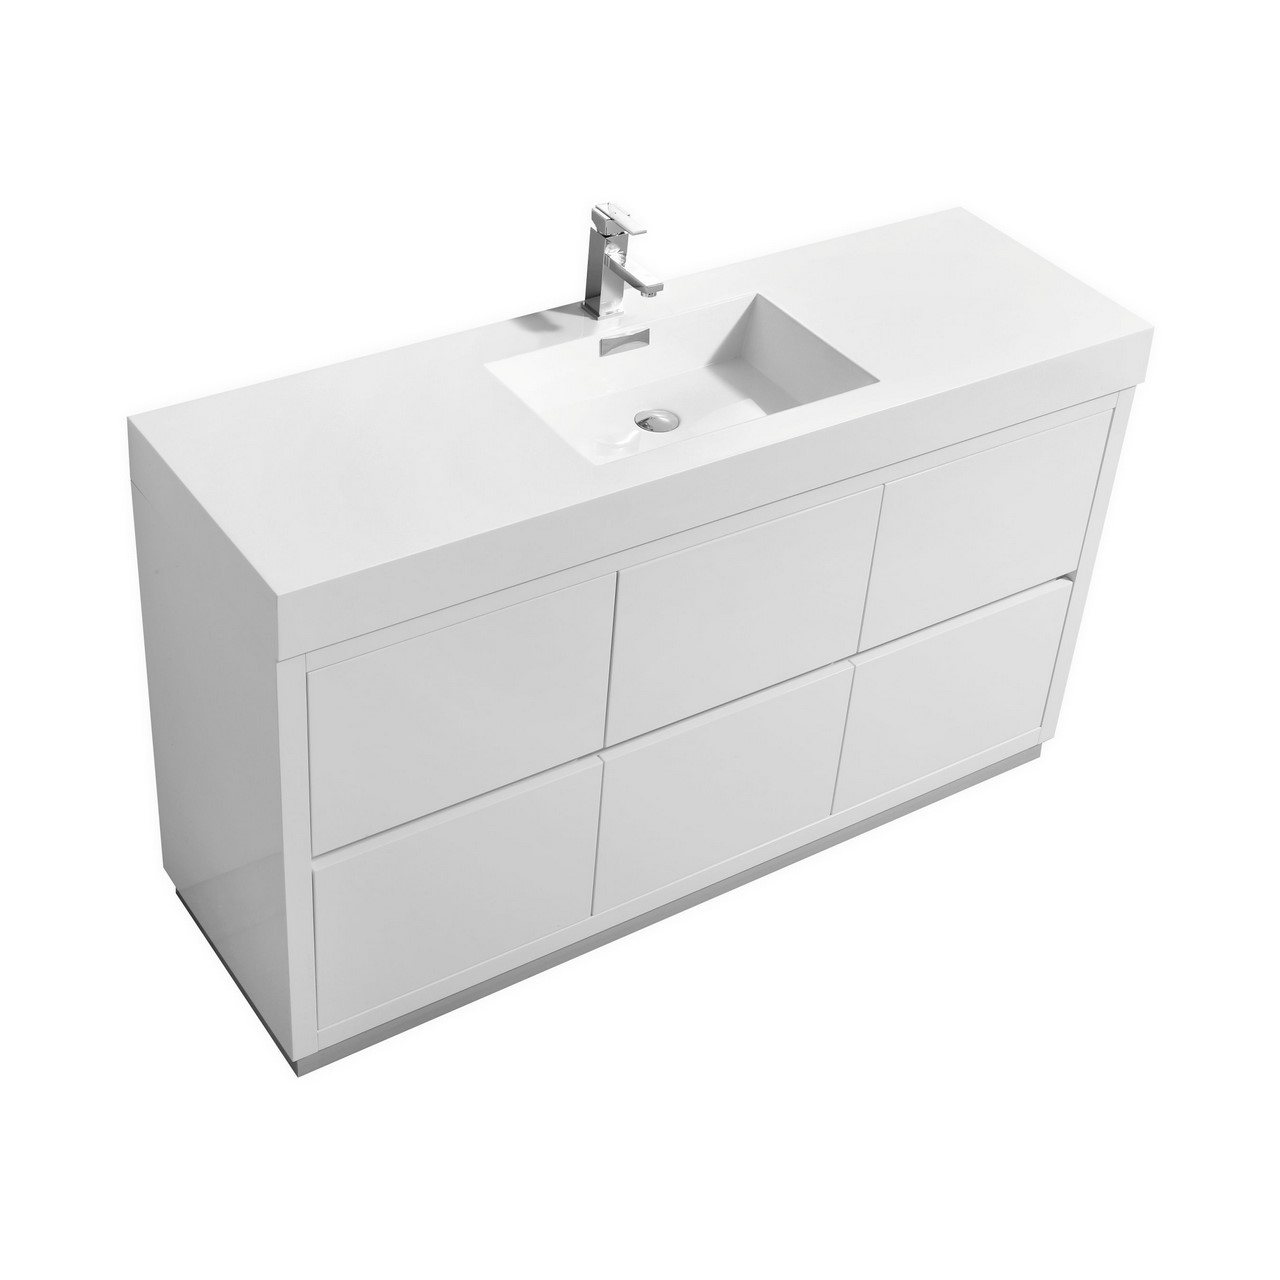 "Modern Lux 60"" Single Sink High Gloss White Free Standing Modern Bathroom Vanity"